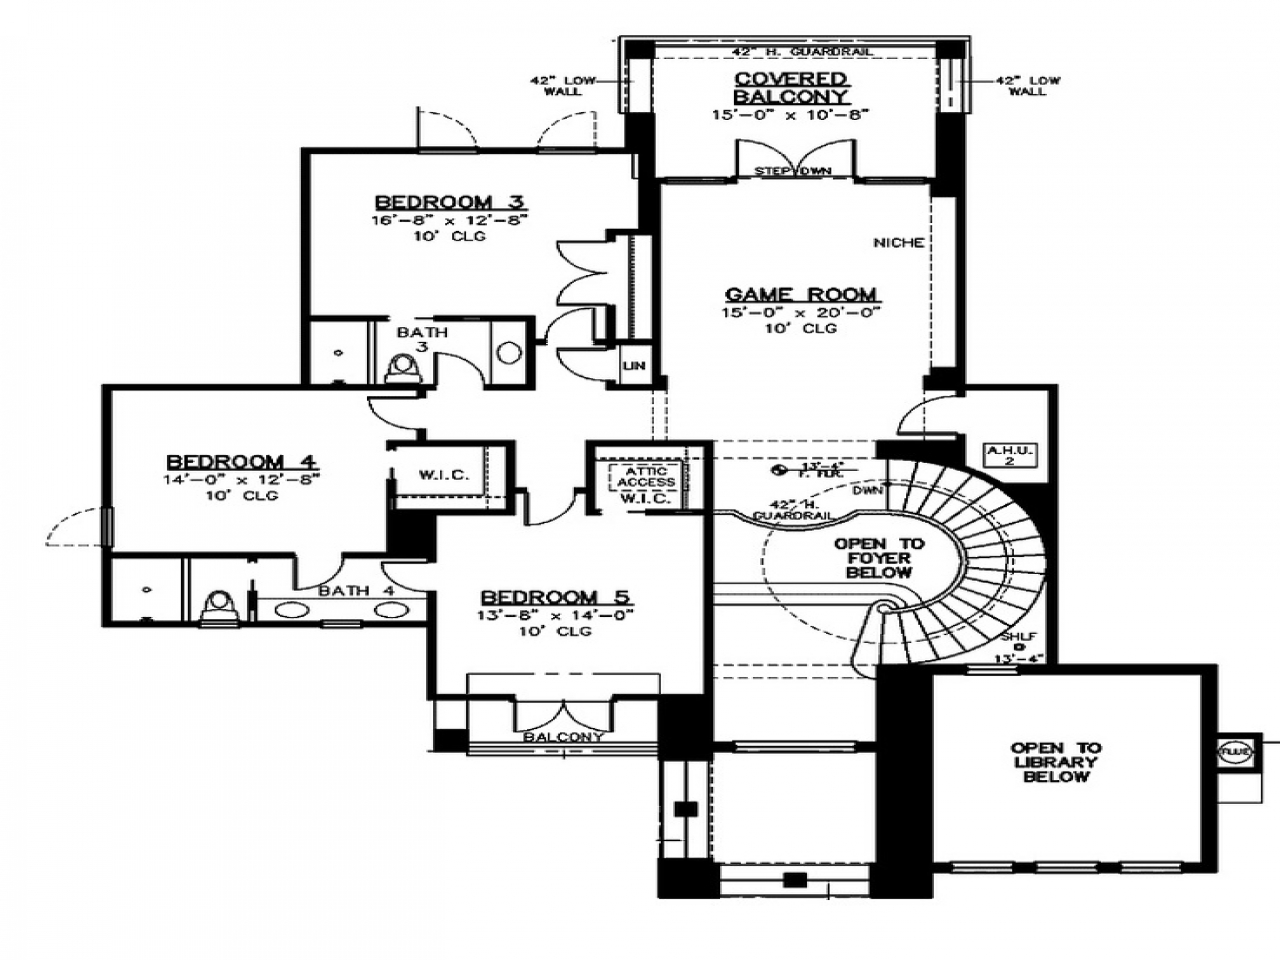 2nd Floor House Plans Blueprints For Houses With Open Floor Plans Floor Plan 2nd